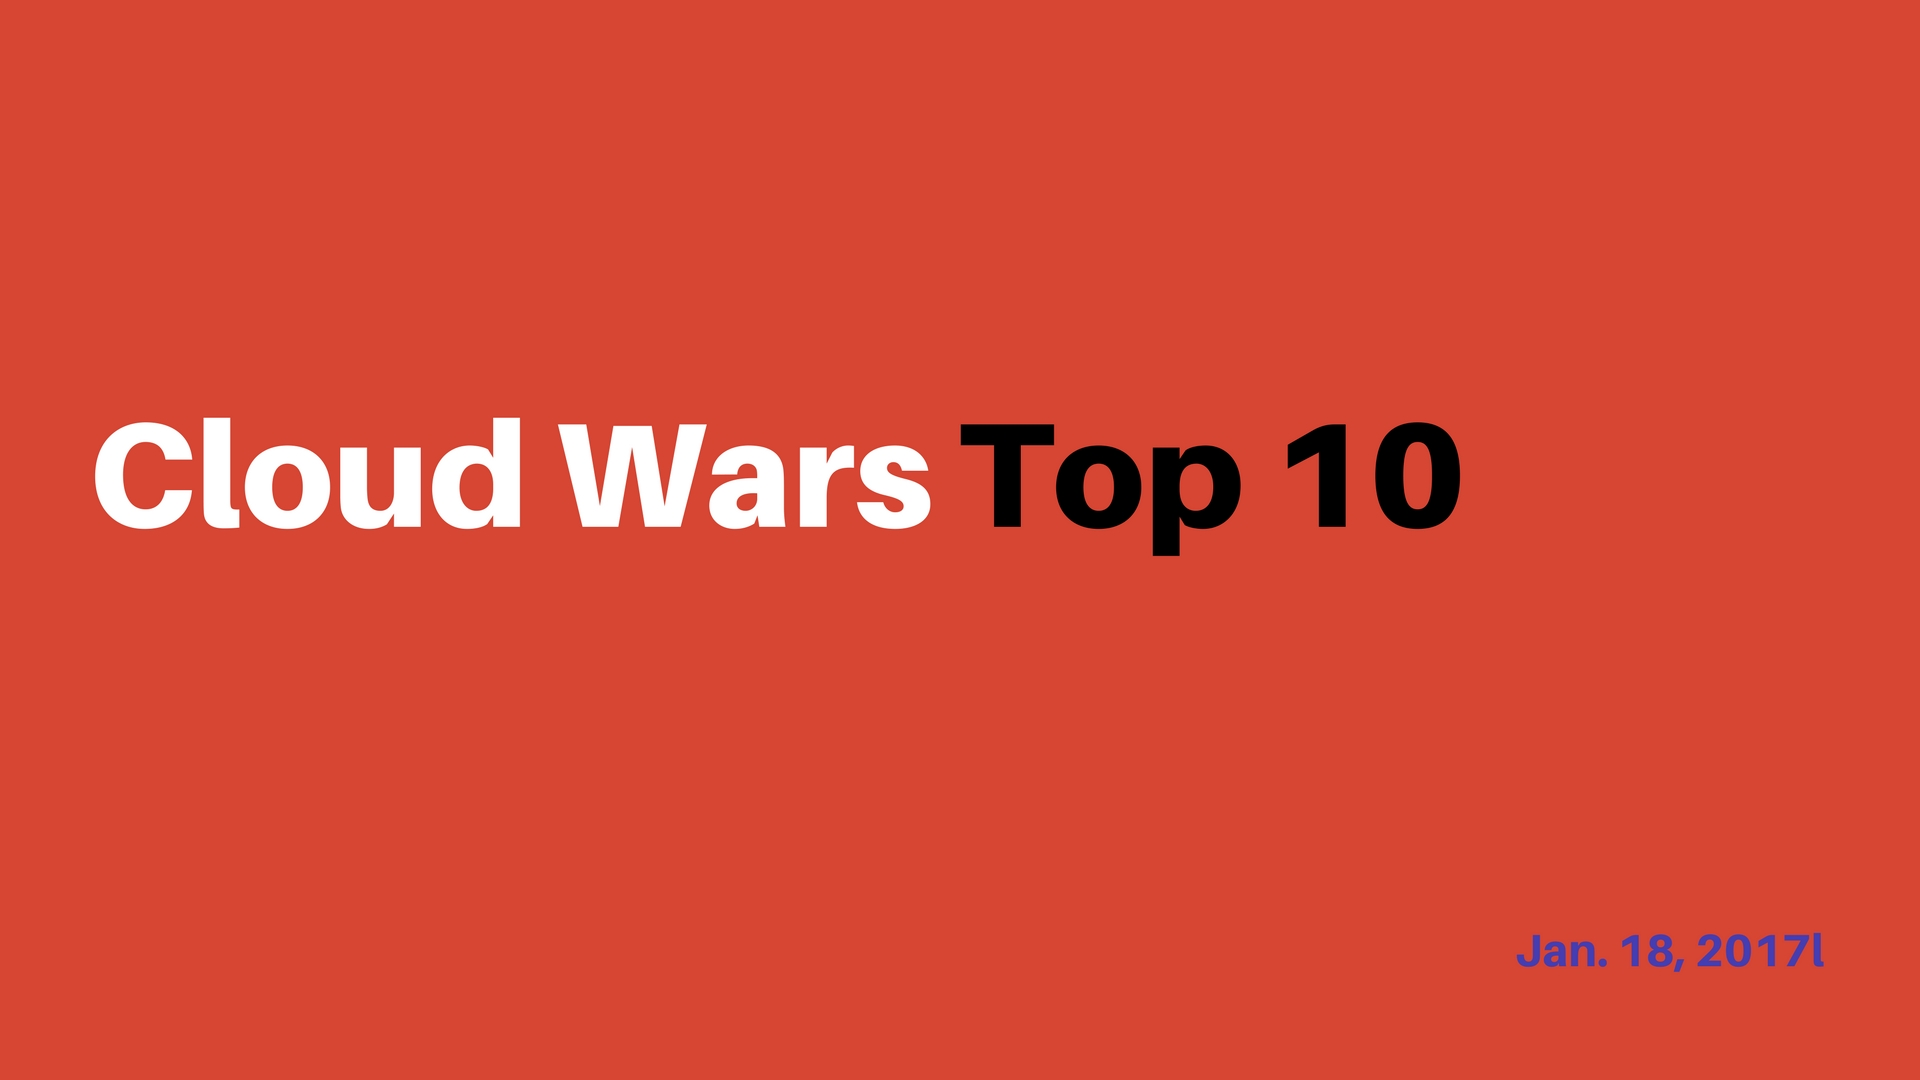 Cloud Wars Top 10: What Enterprise Needs To Know This Week